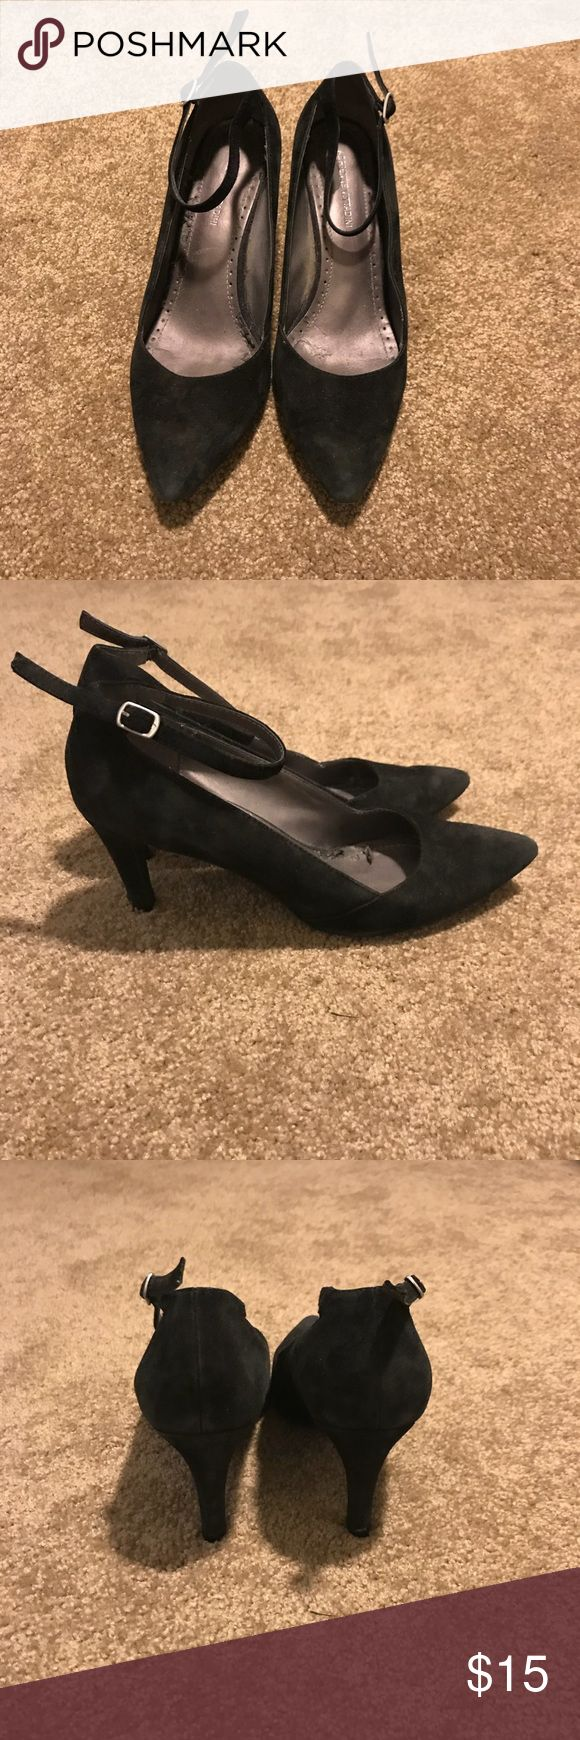 """Adrienne Vittadini Strappy Heels Worn and loved but my feet grew after giving birth!! Perfect shoes for salsa dancing. Brand new taps & have not worn since adding taps on. Size: 7.5 Heel: 2.5"""" Material: Suede Color: Black Sole: Leather Toe: Rounded Point Adrienne Vittadini Shoes Heels"""